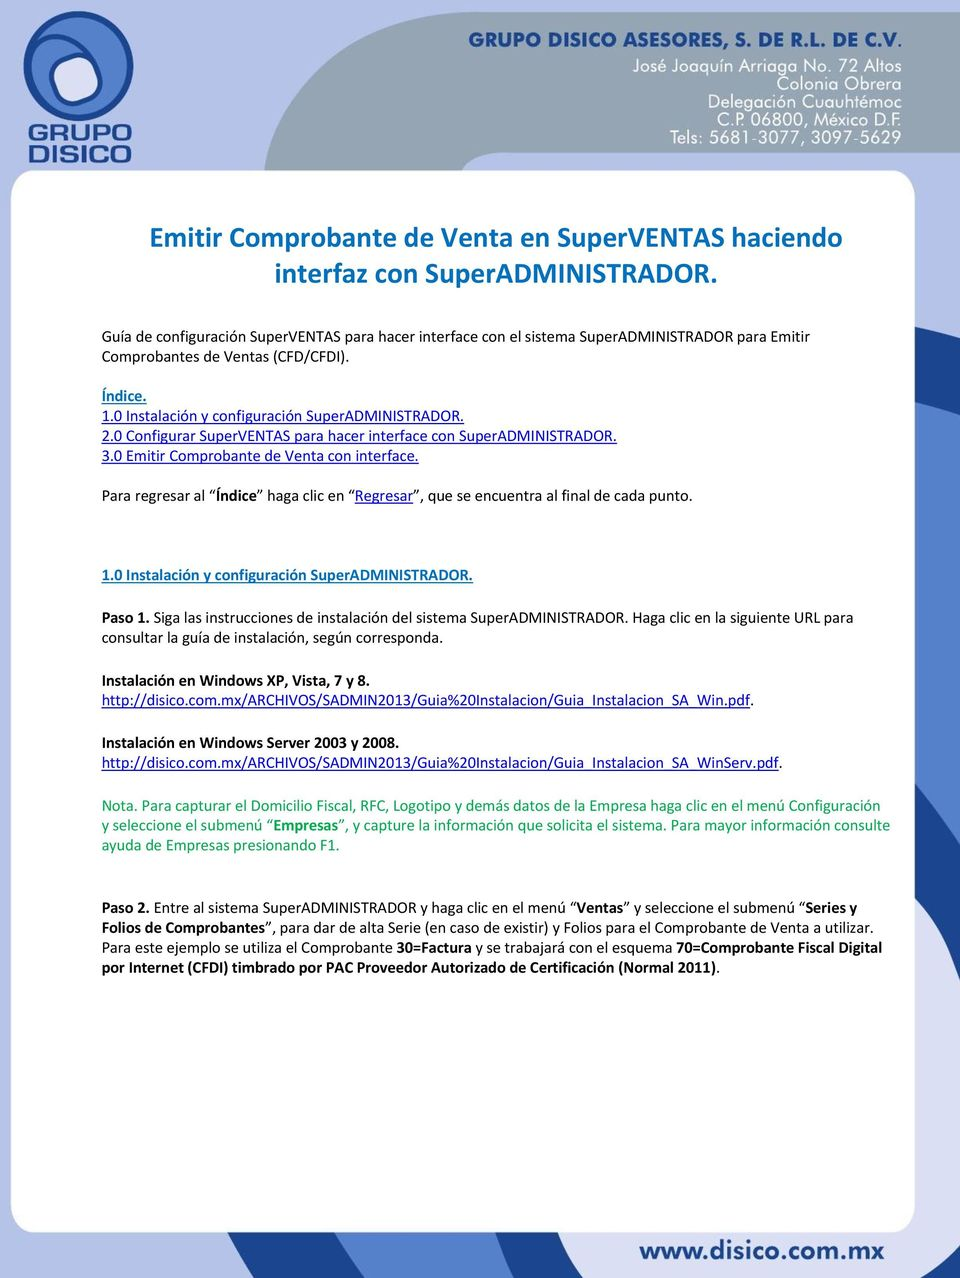 0 Configurar SuperVENTAS para hacer interface con SuperADMINISTRADOR. 3.0 Emitir Comprobante de Venta con interface.